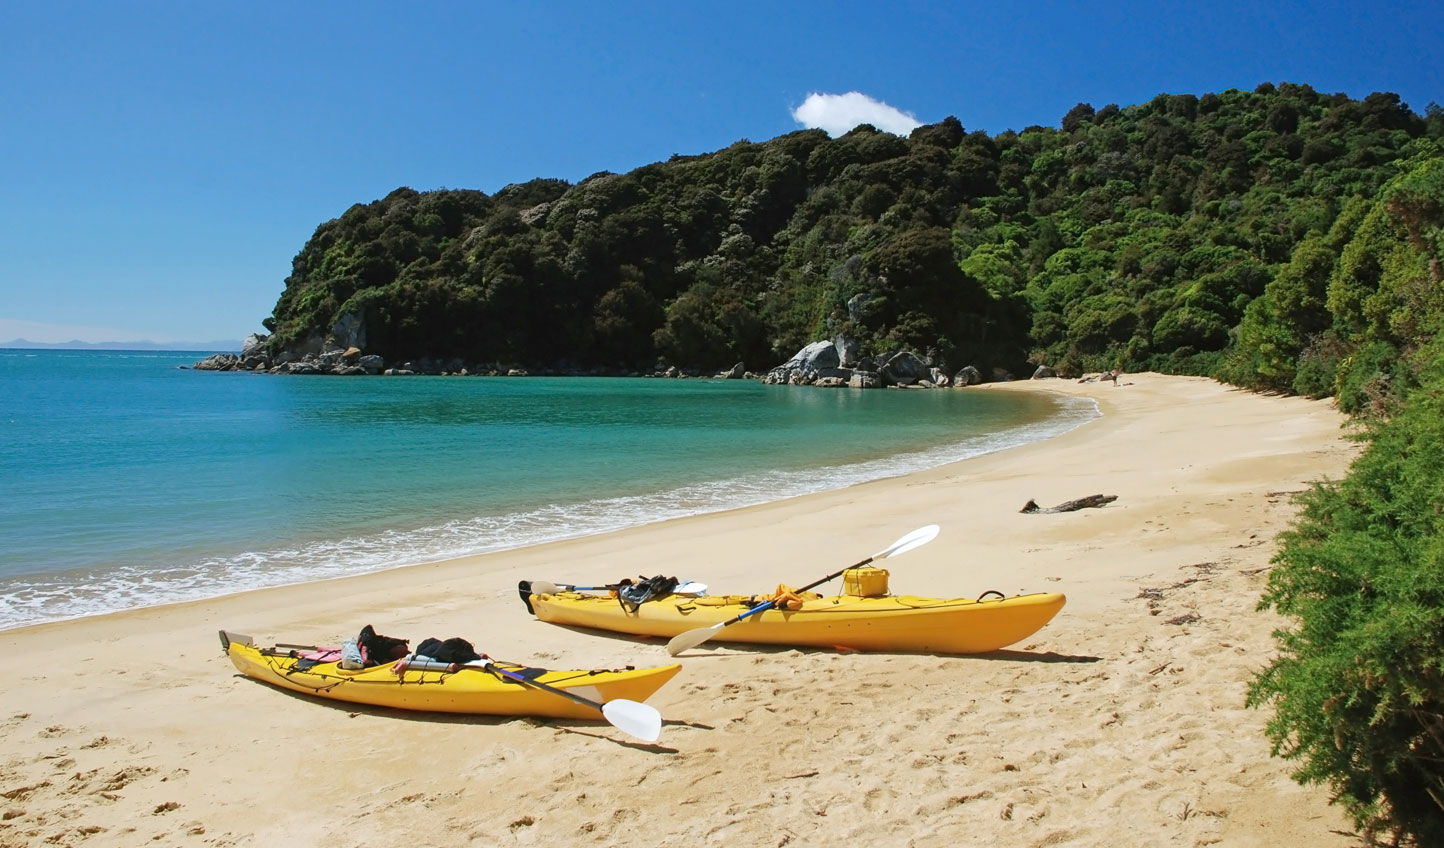 Take to the waters in kayaks and stumble upon hidden beaches and bays